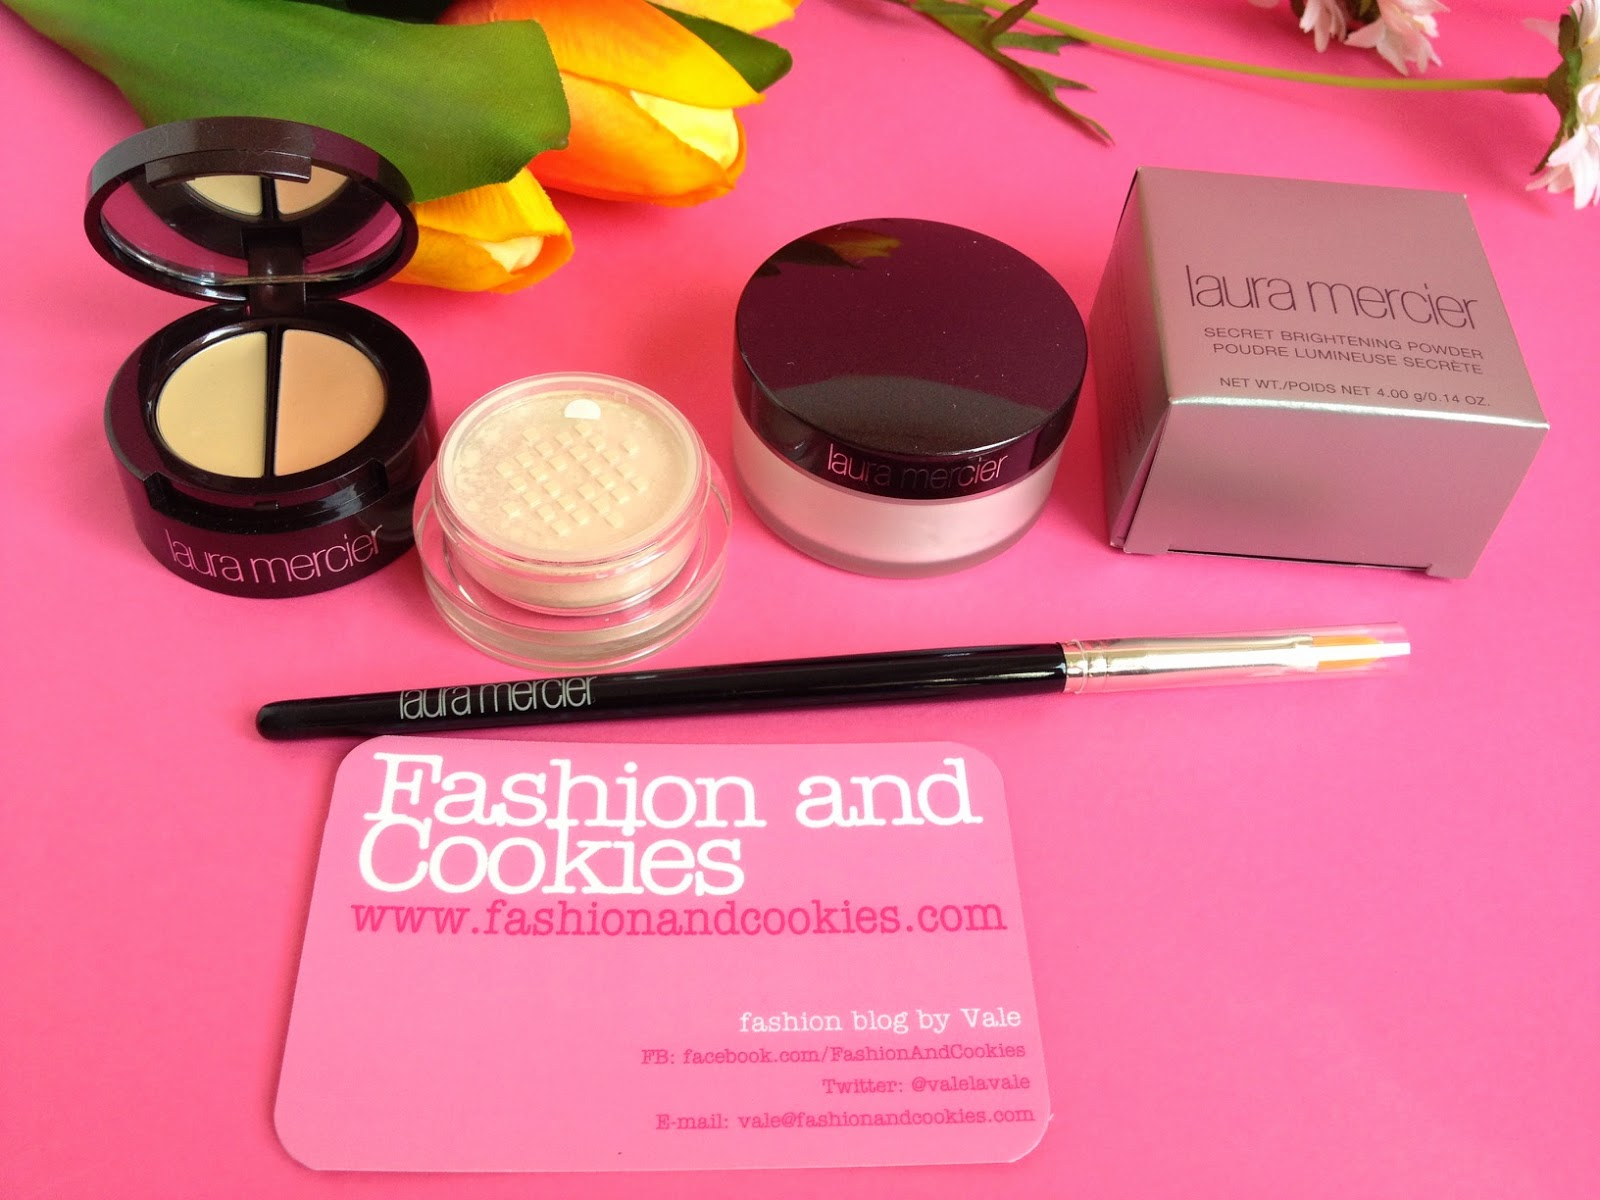 Laura Mercier makeup on Stefano Saccani Parma, Laura Mercier haul,  Laura Mercier secret brightening powder, Laura Mercier undercover pot, Fashion and Cookies, fashion blog